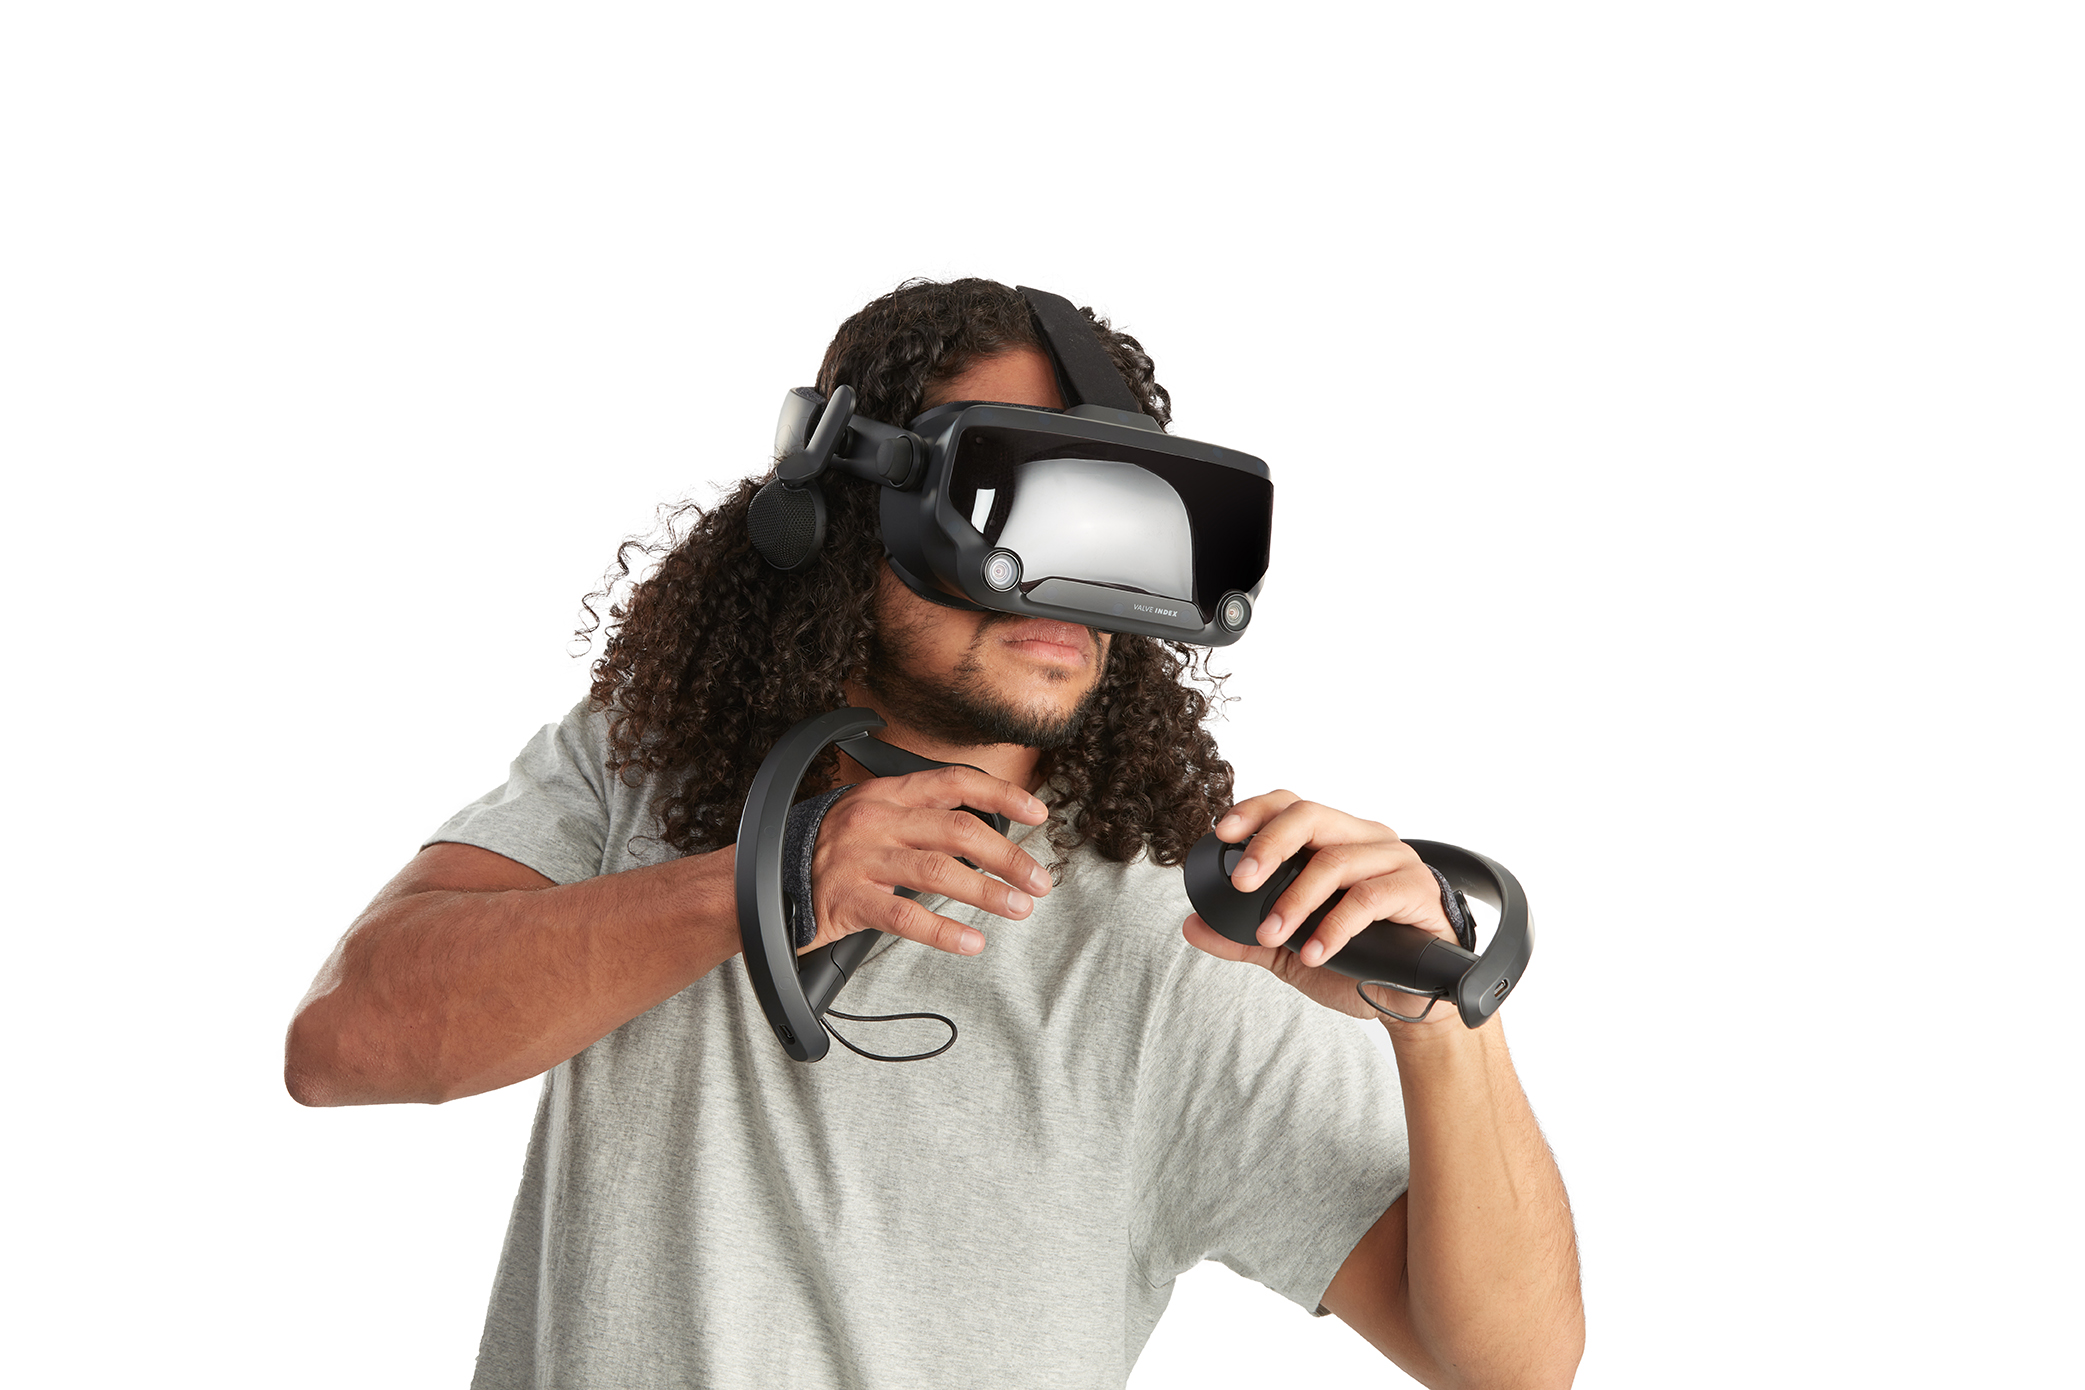 Valve Index will be available in Australia from August